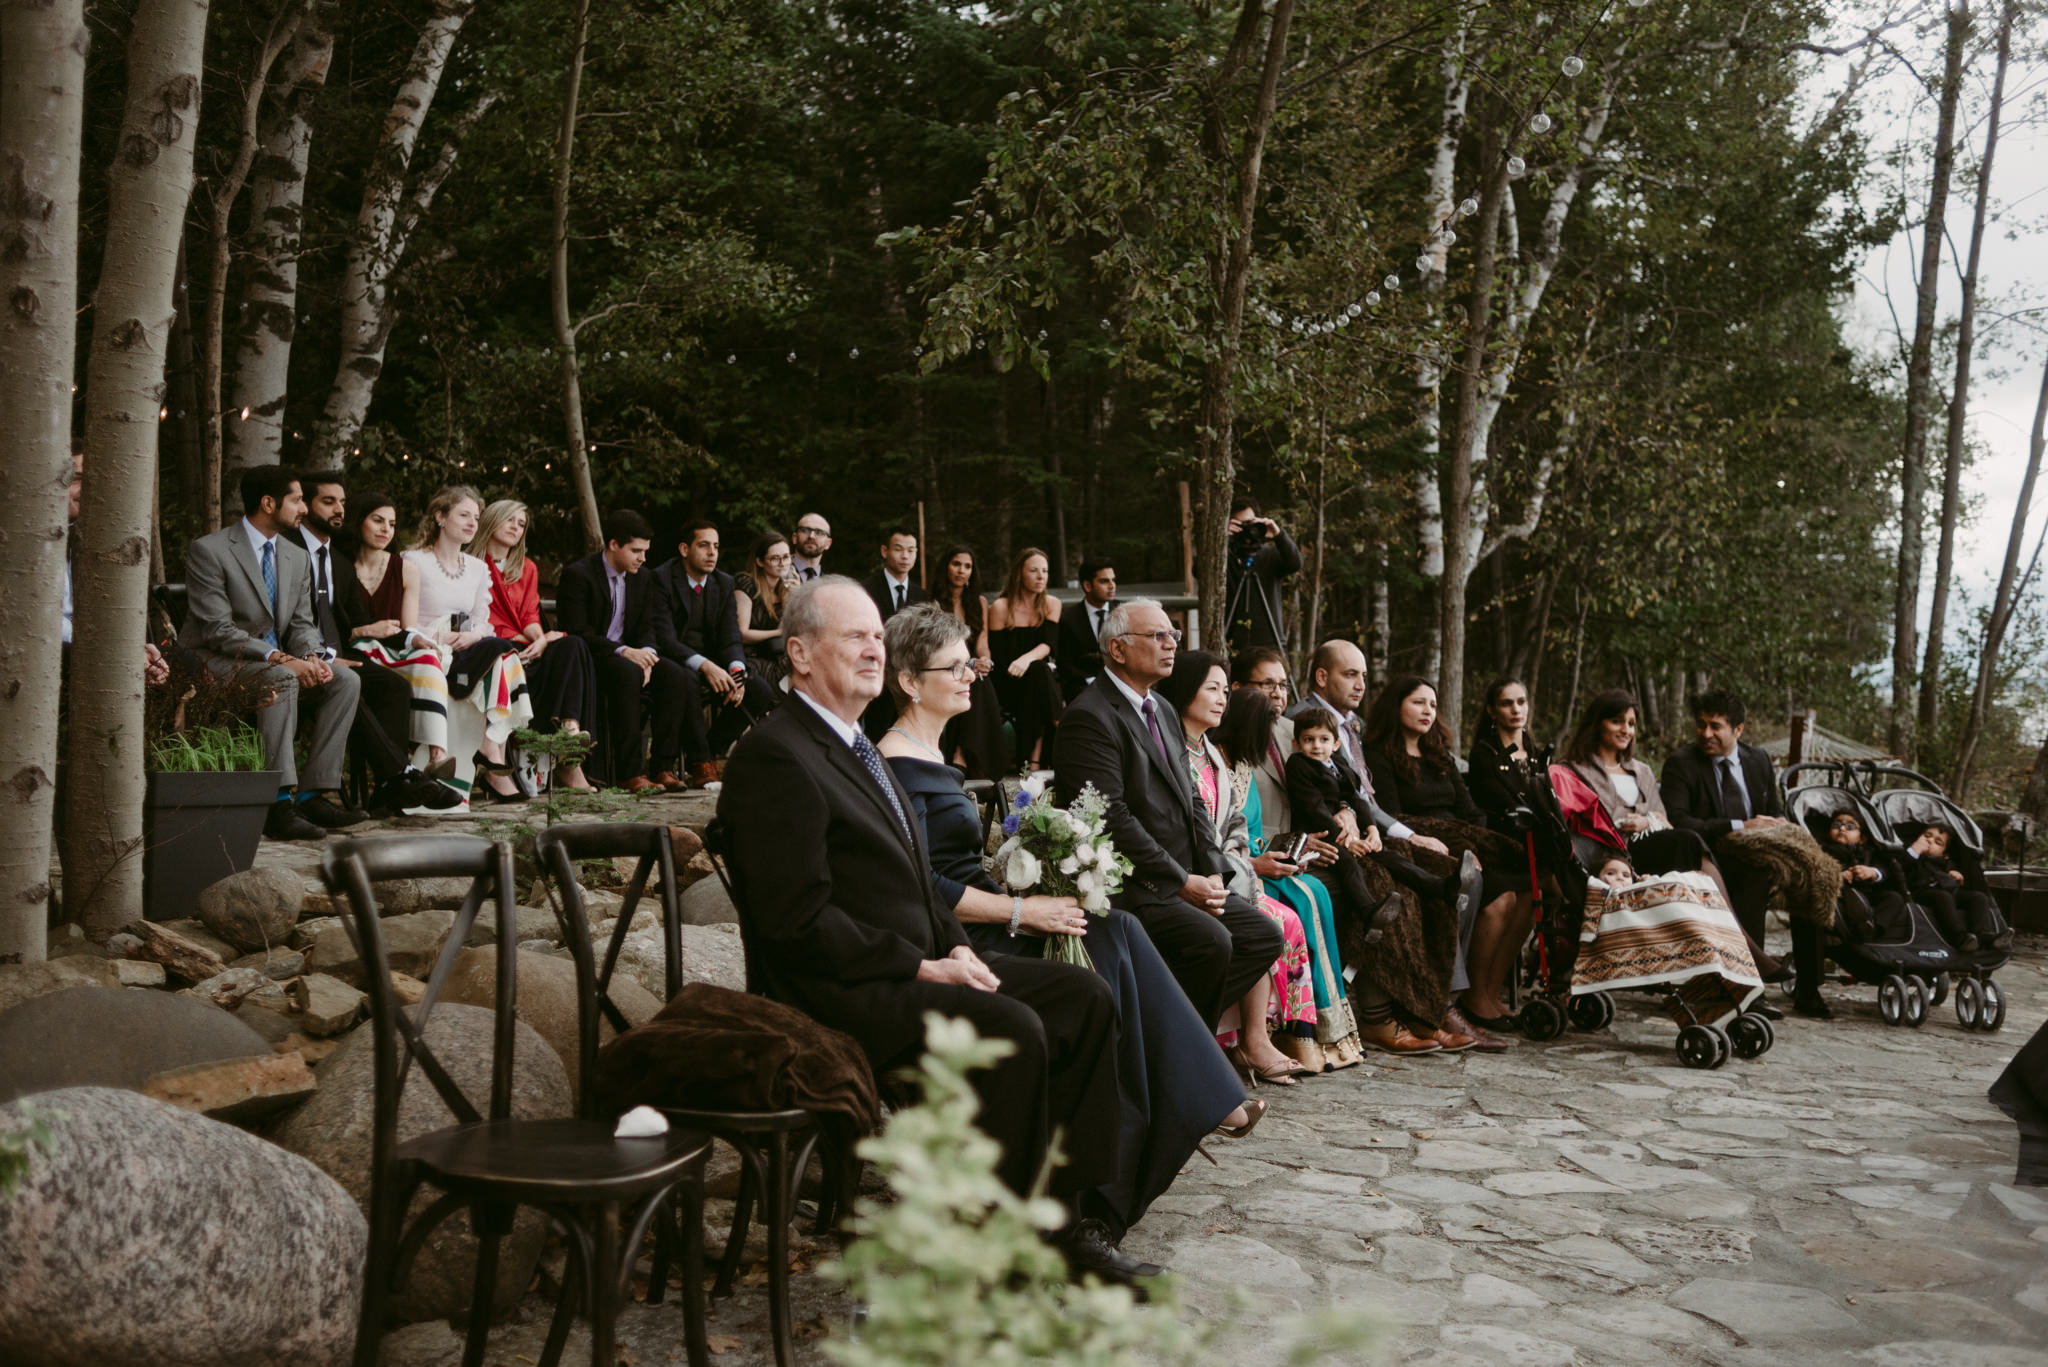 guests sitting outside during wedding ceremony